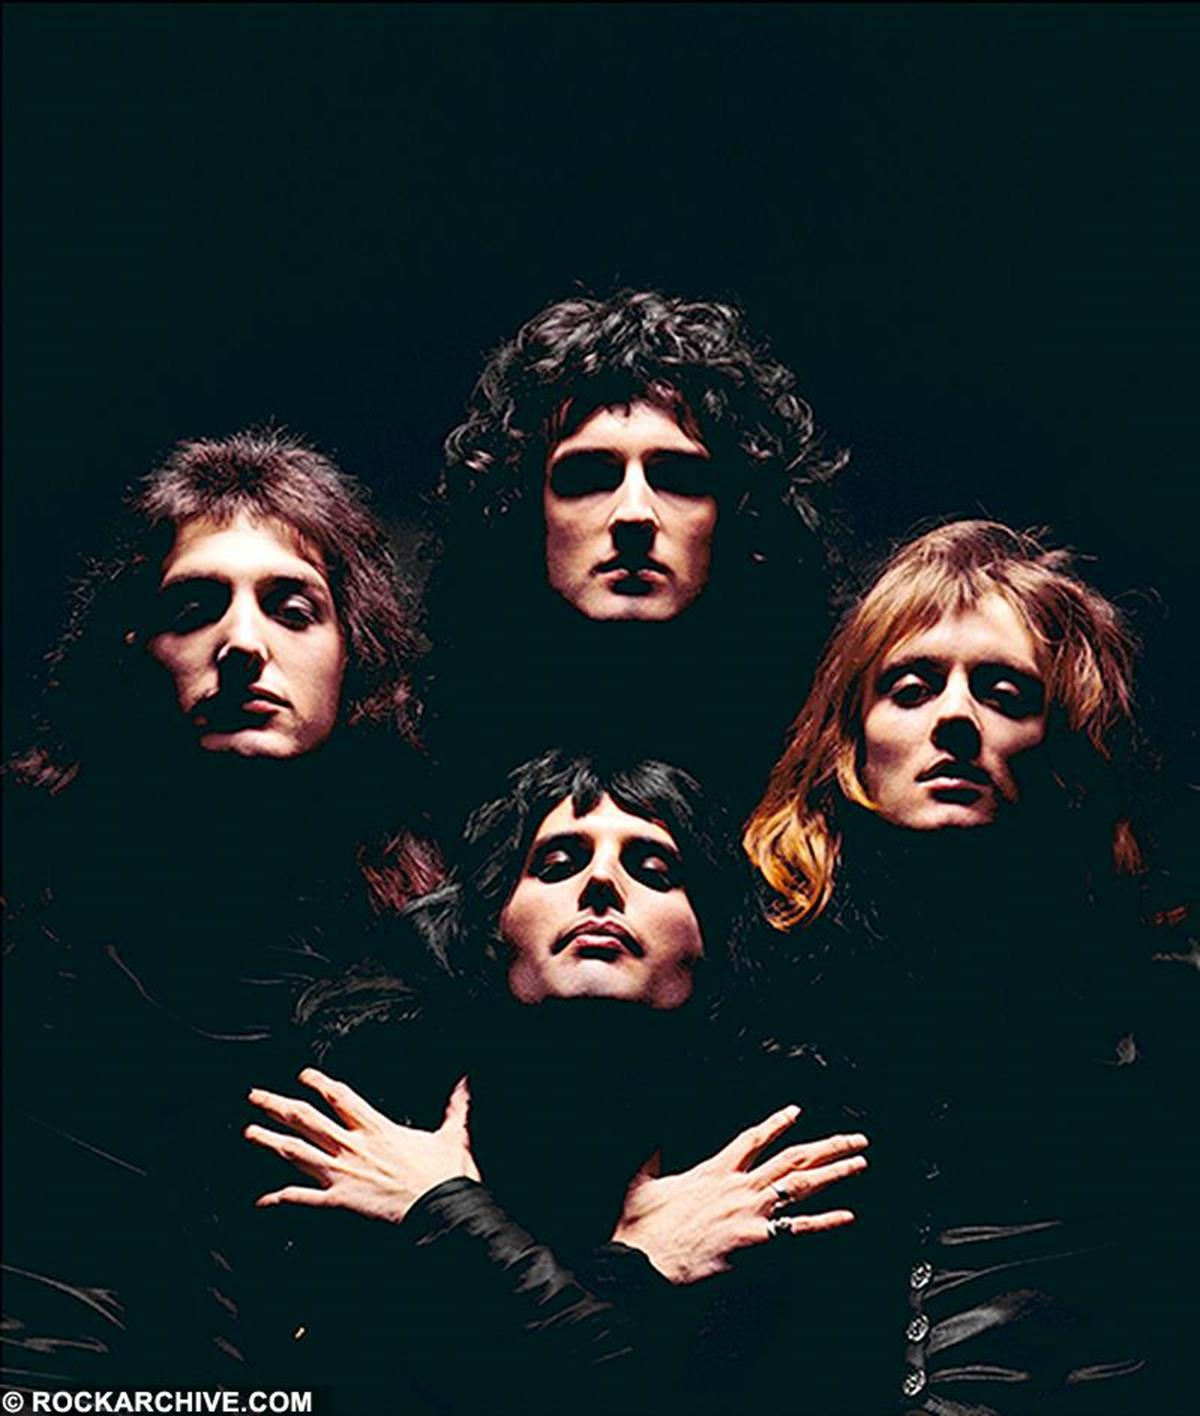 Cover artwork for the iconic Queen 2 album released in 1974. © Mick Rock